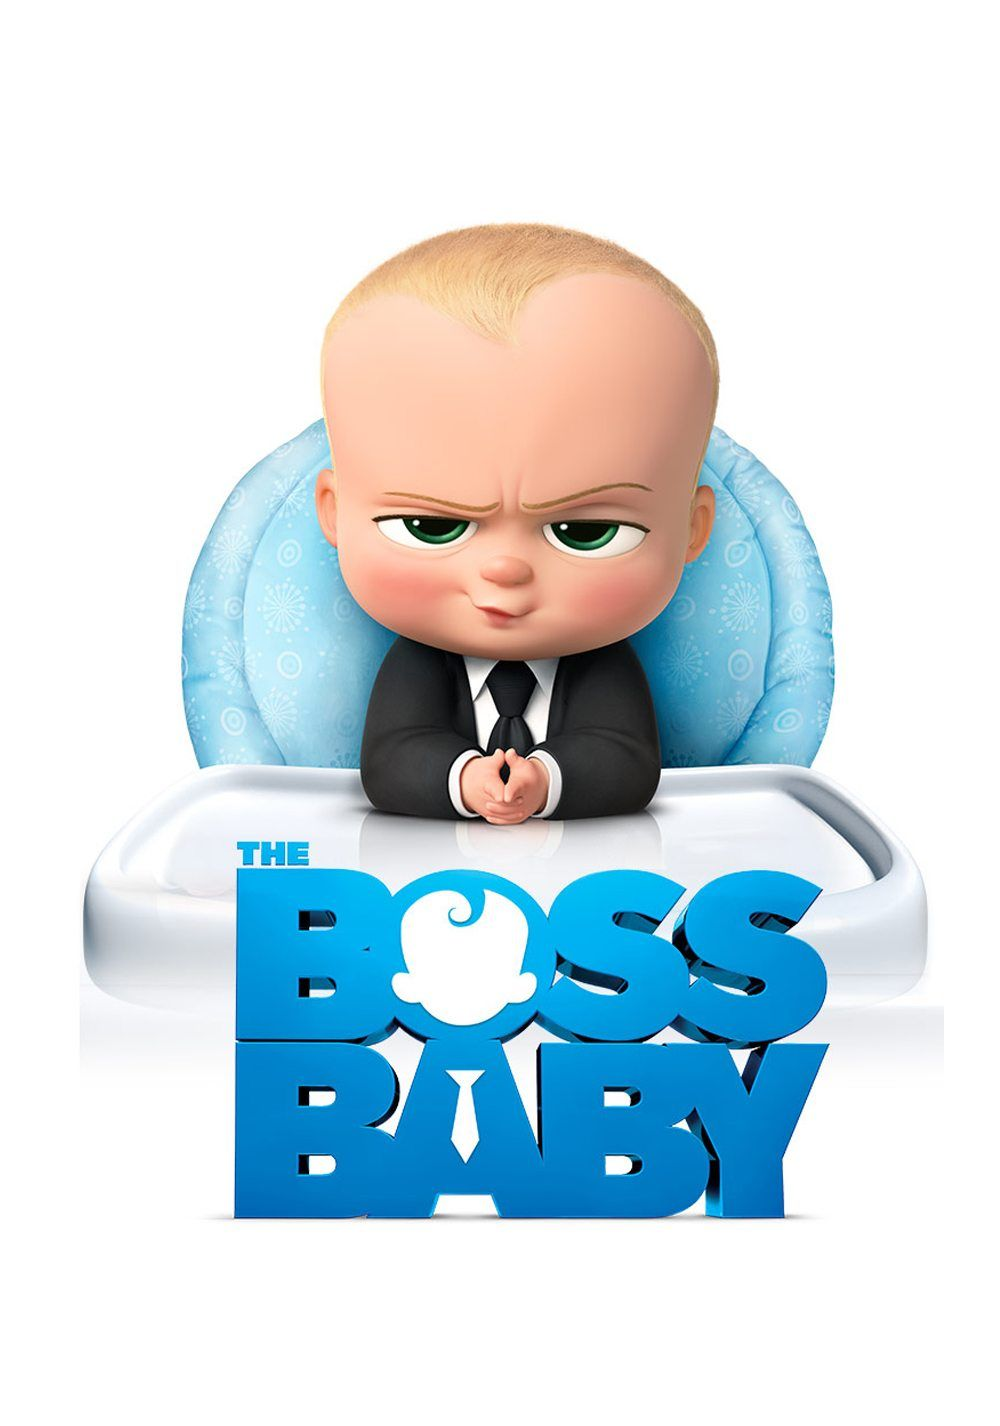 boss baby full movie free download movies counter